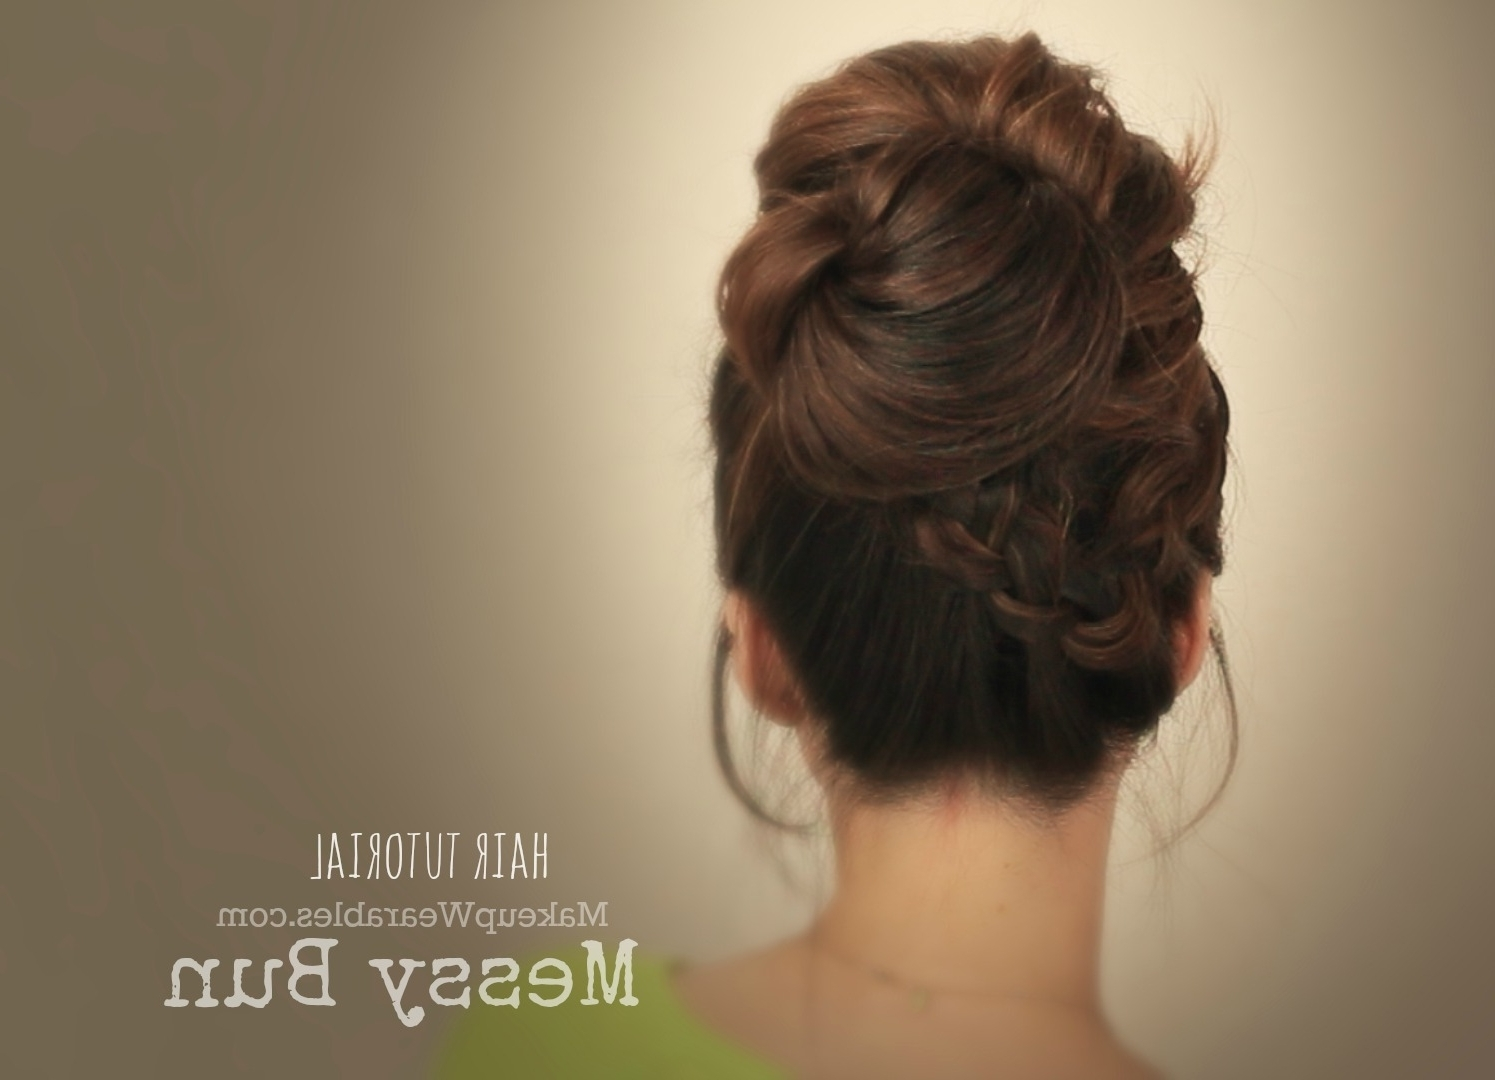 Cute Messy Bun Quick Everyday Updo Hairstyles Hair Tutorial Videos Pertaining To Messy Hair Updo Hairstyles For Long Hair (View 9 of 15)